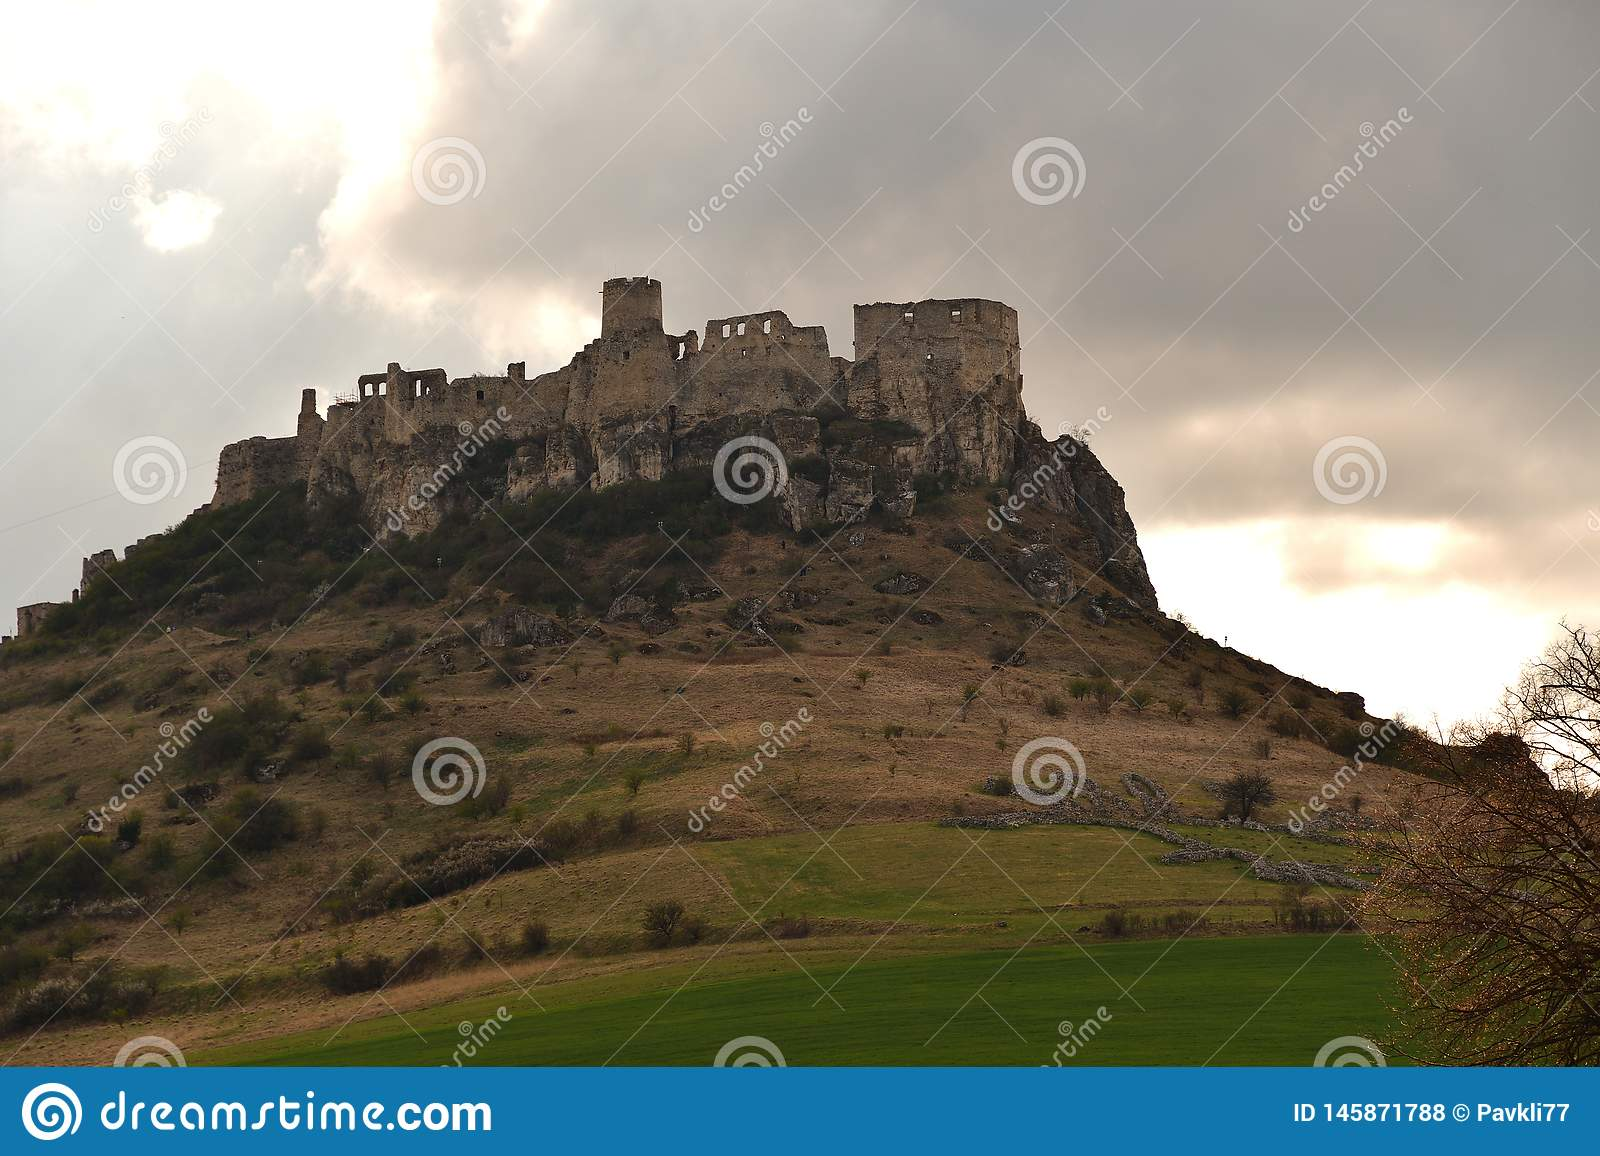 Walls of the ruin of a historic castle in the countryside Spis Slovakia